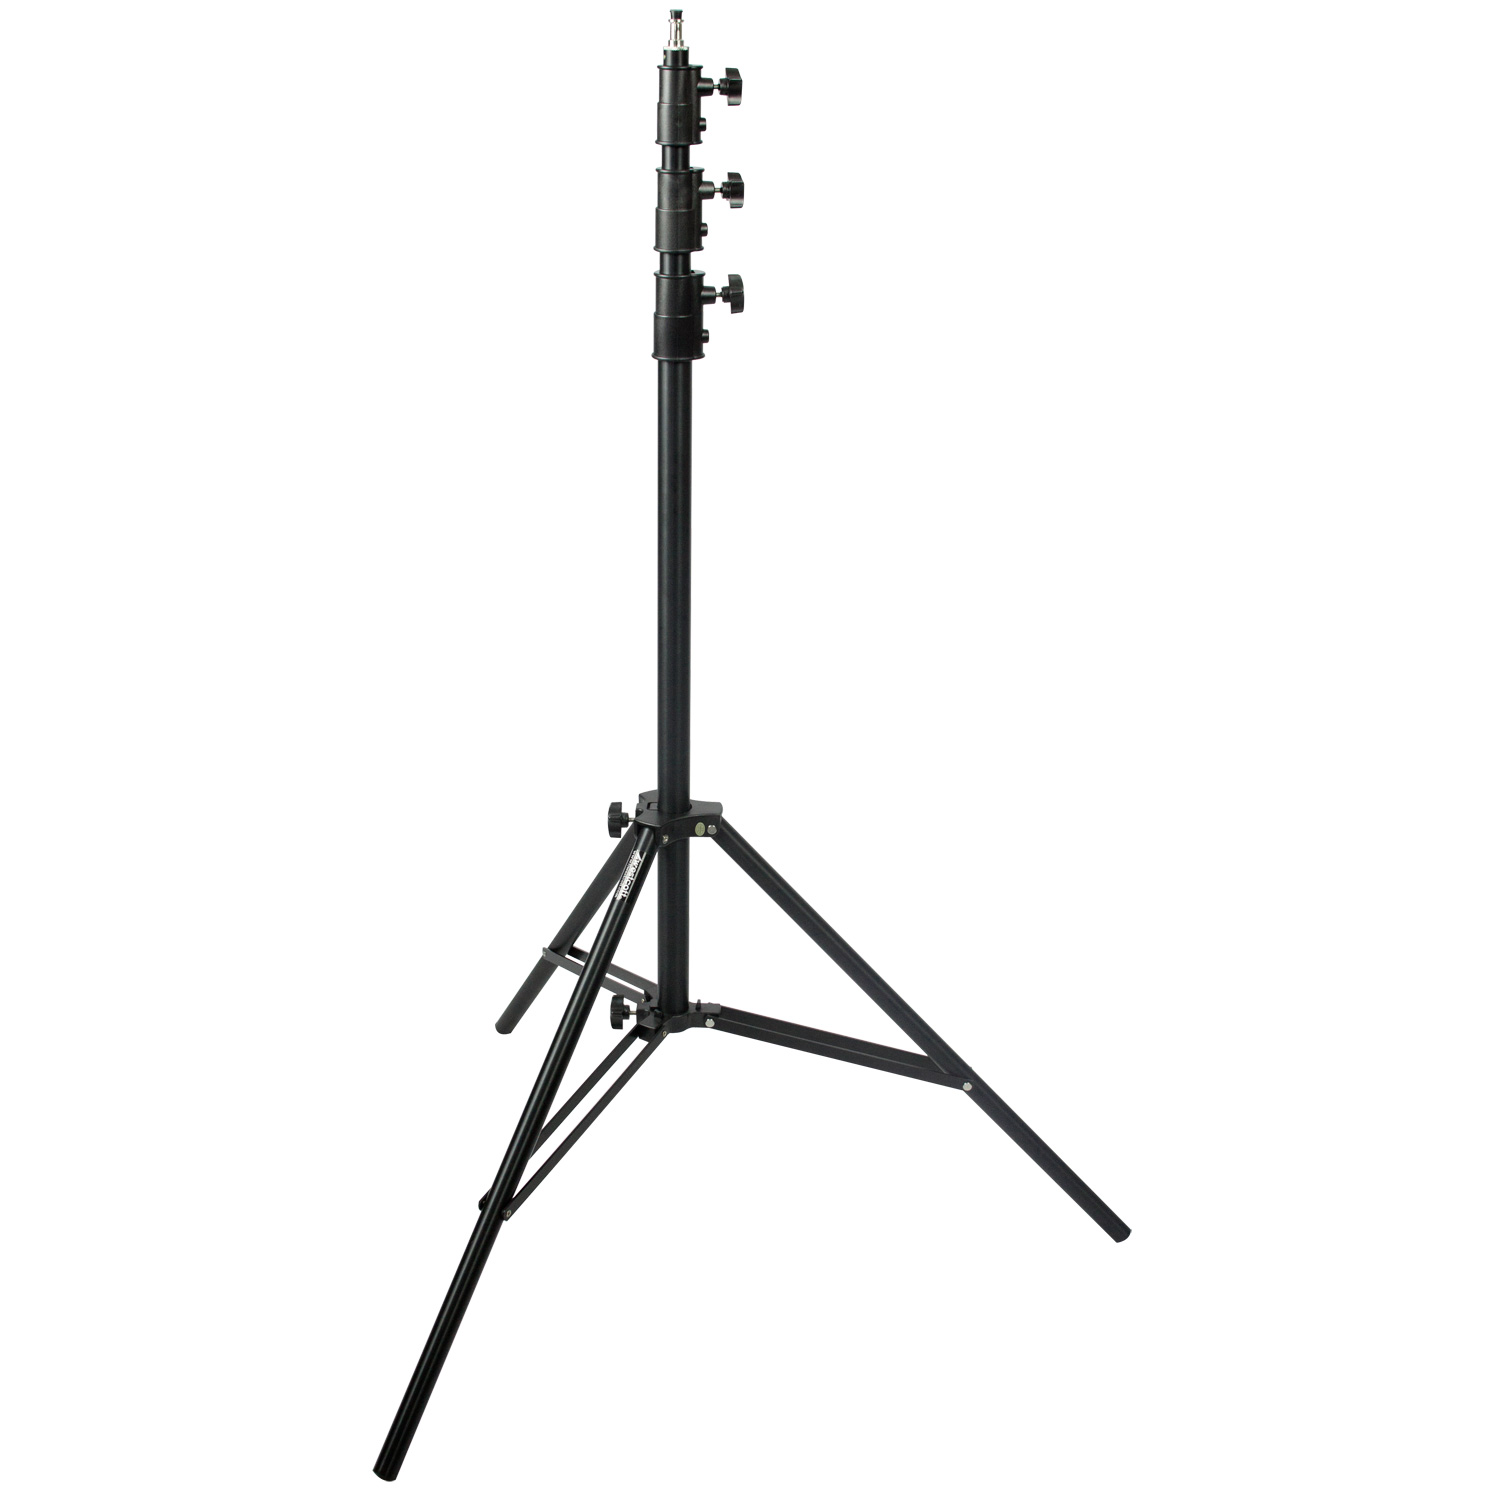 13' Heavy-Duty Air-Cushioned Light Stand